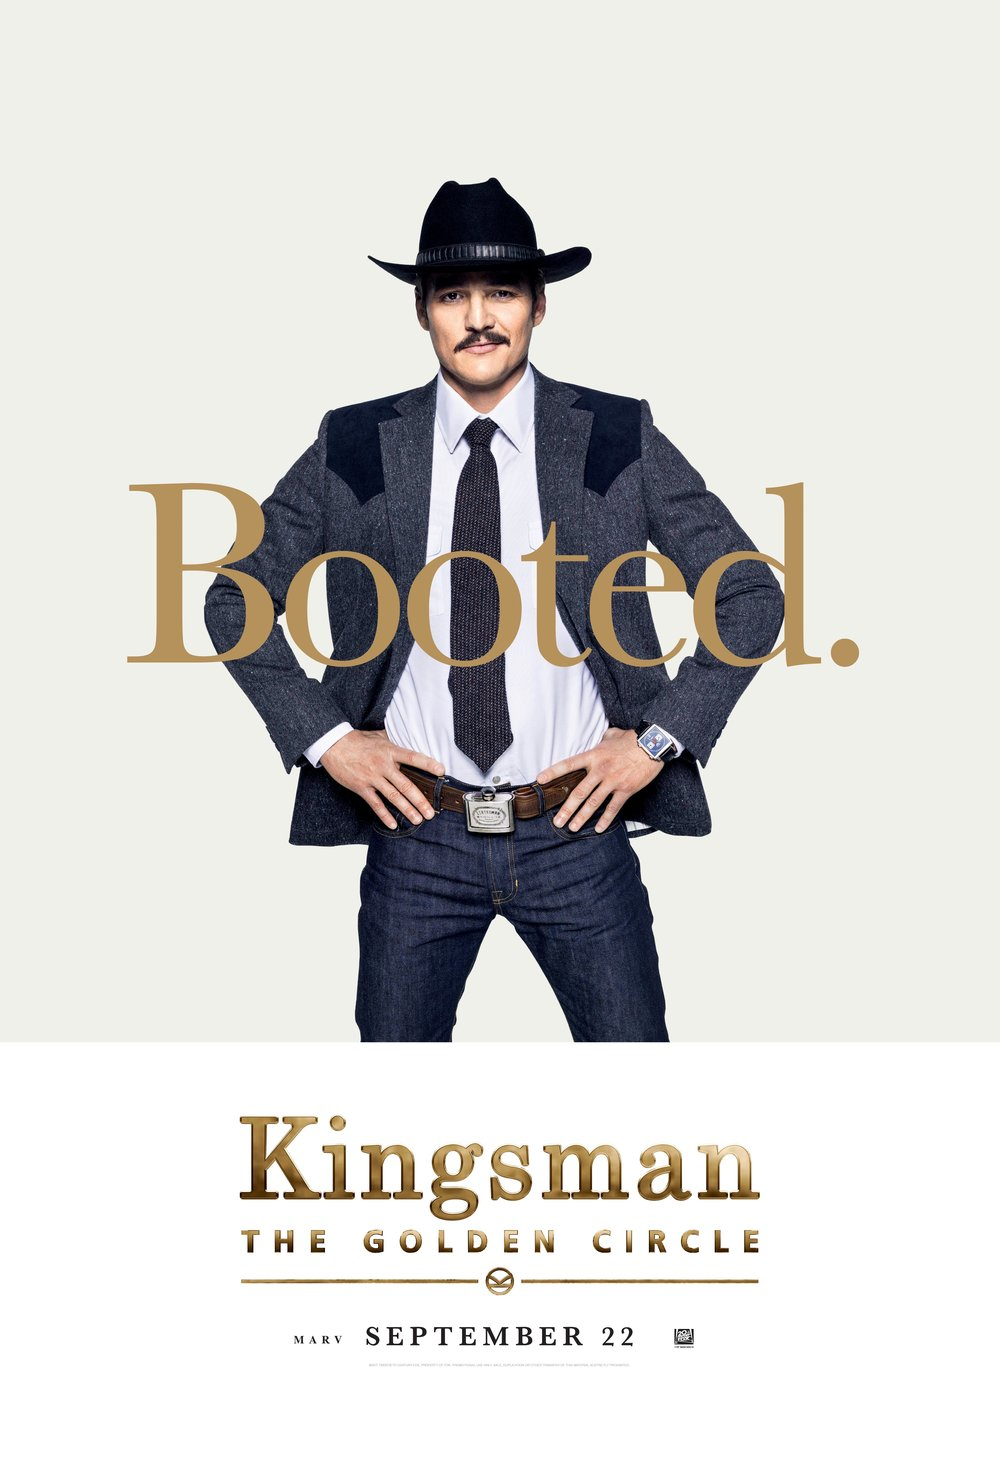 8-dapper-kingsman-the-golden-circle-character-posters-and-comic-con-panel-details6